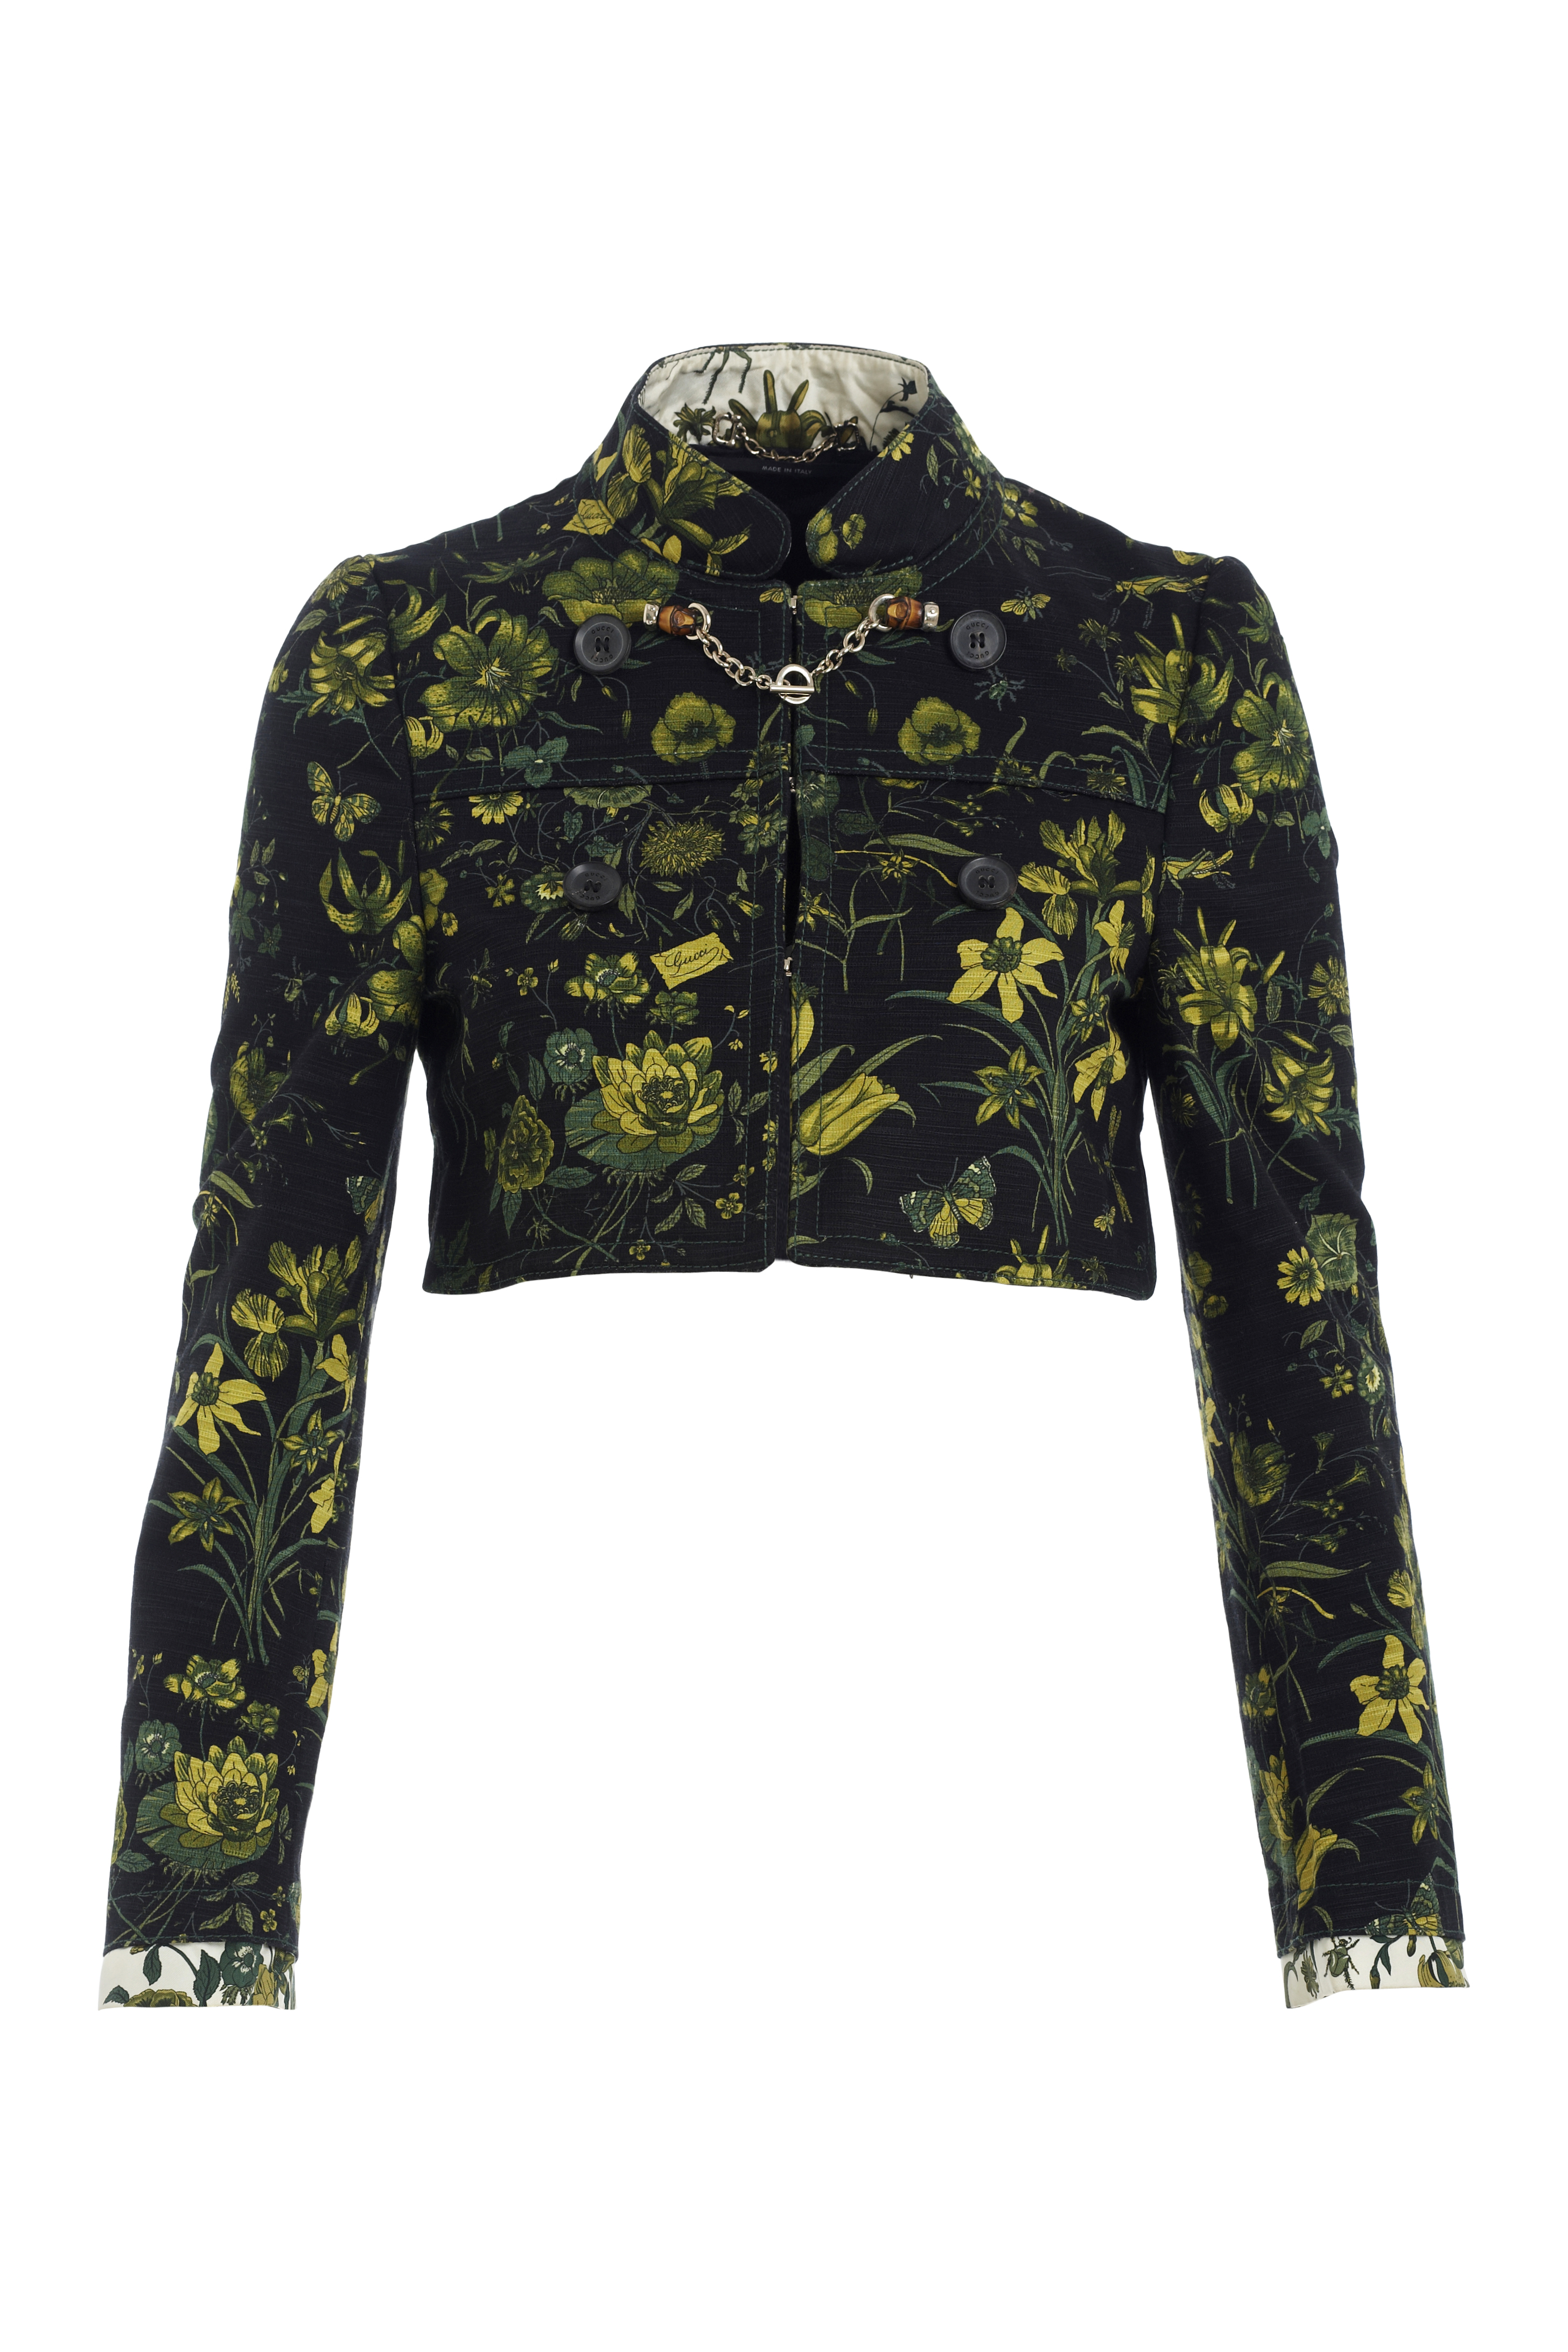 4ba4a0ea11b Gucci black crop jacket with green floral print and chain with bamboo front  closure